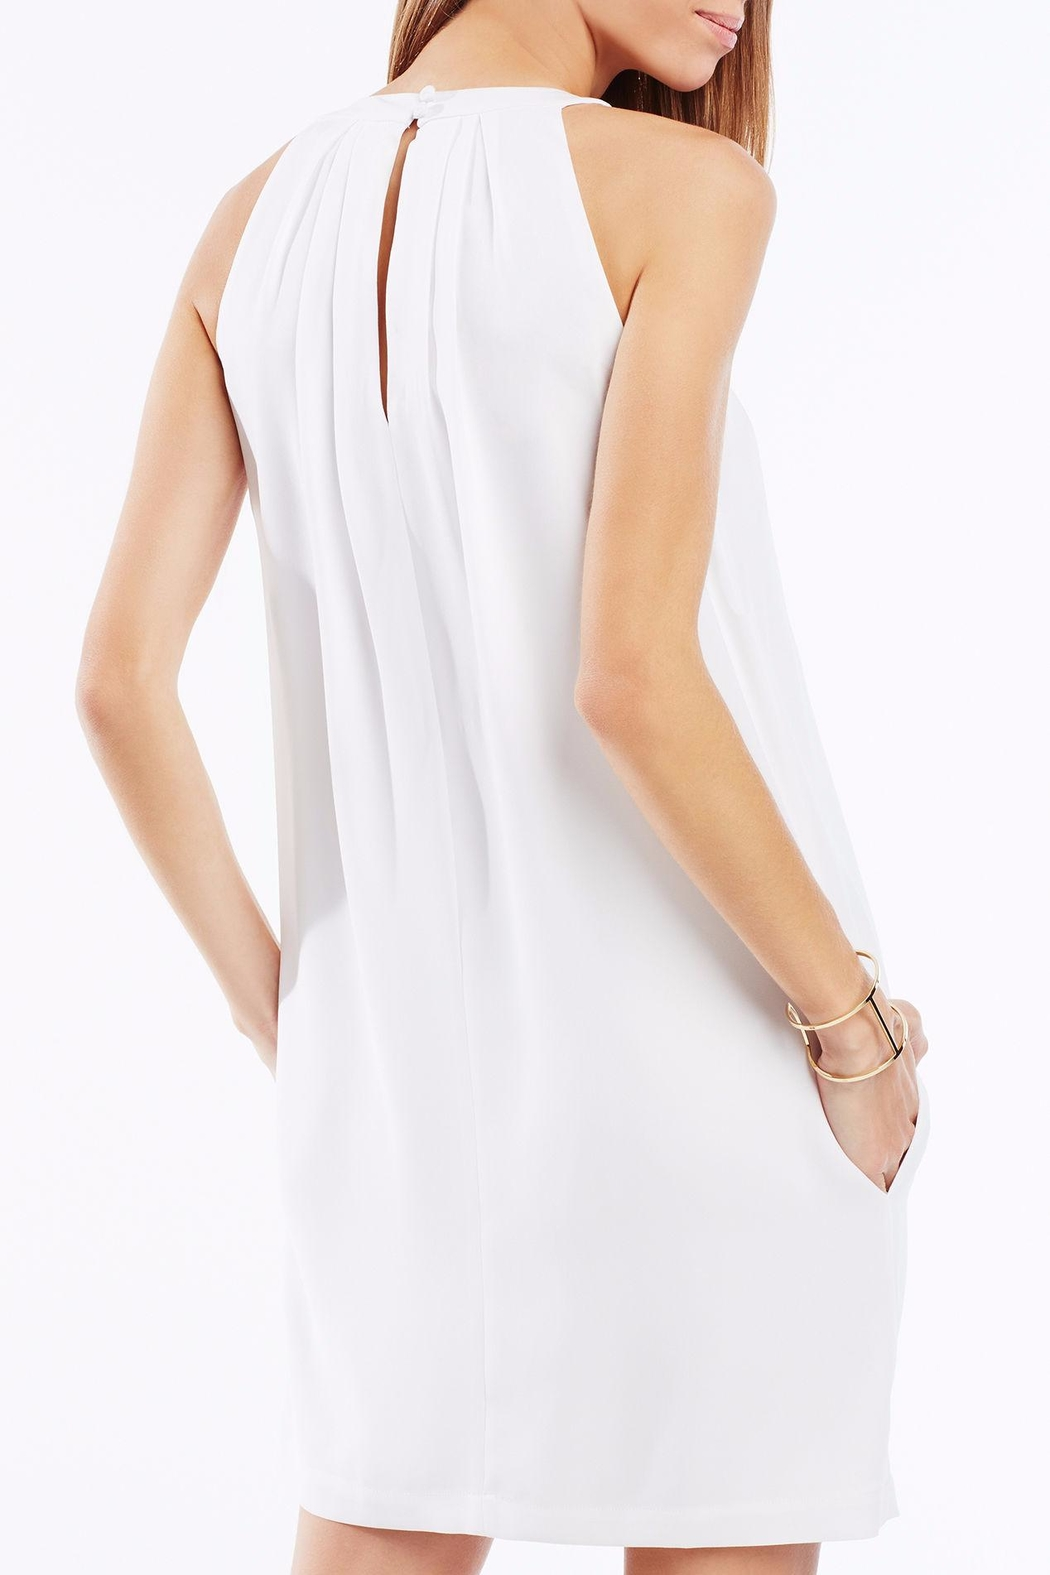 BCBG Max Azria Tristyn Pleated Halter - Front Full Image